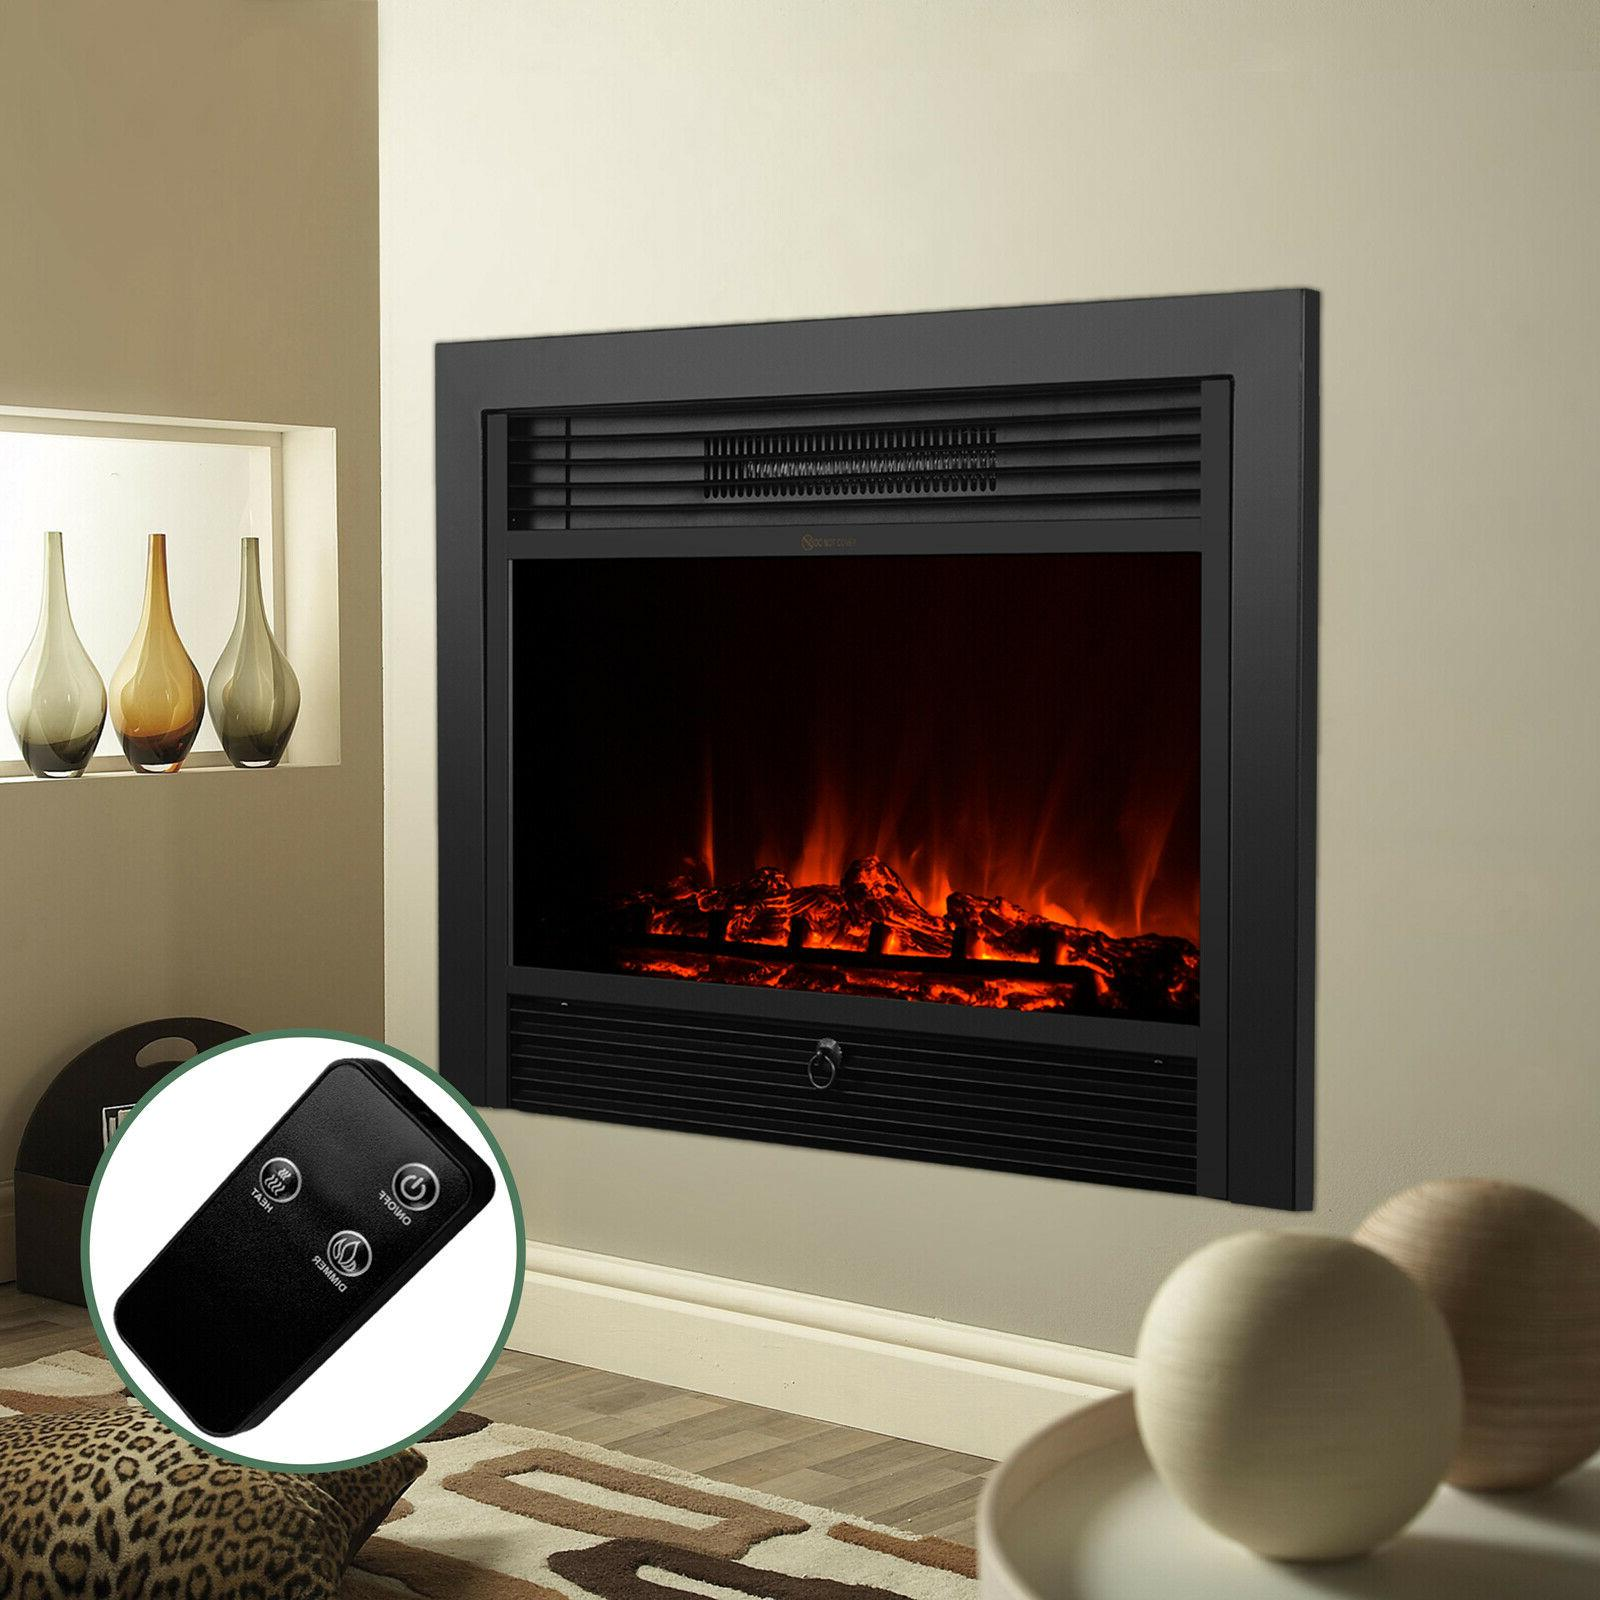 embedded electric insert heater fireplace